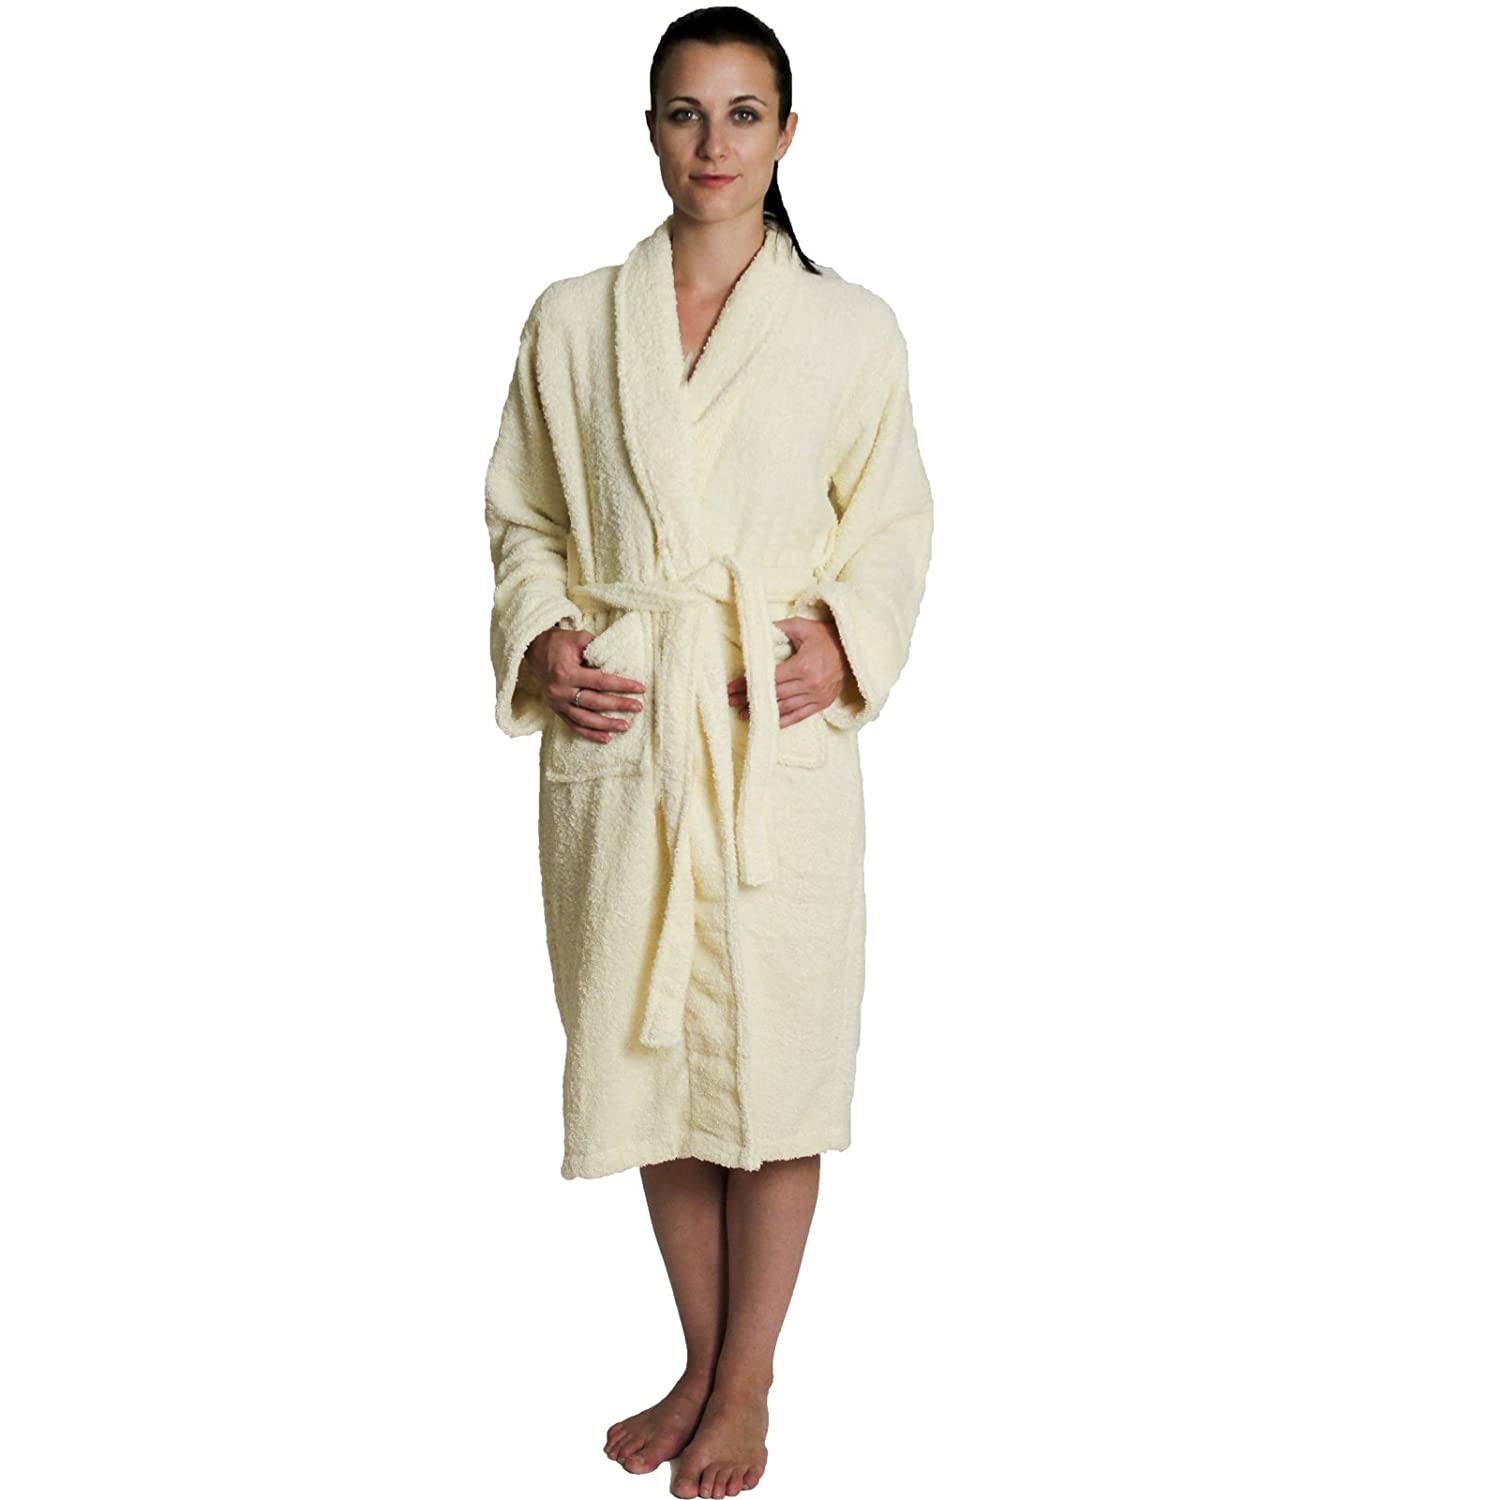 NDK New York Women's and Men's Terry Cloth Bath Robe 100% Cotton 18012